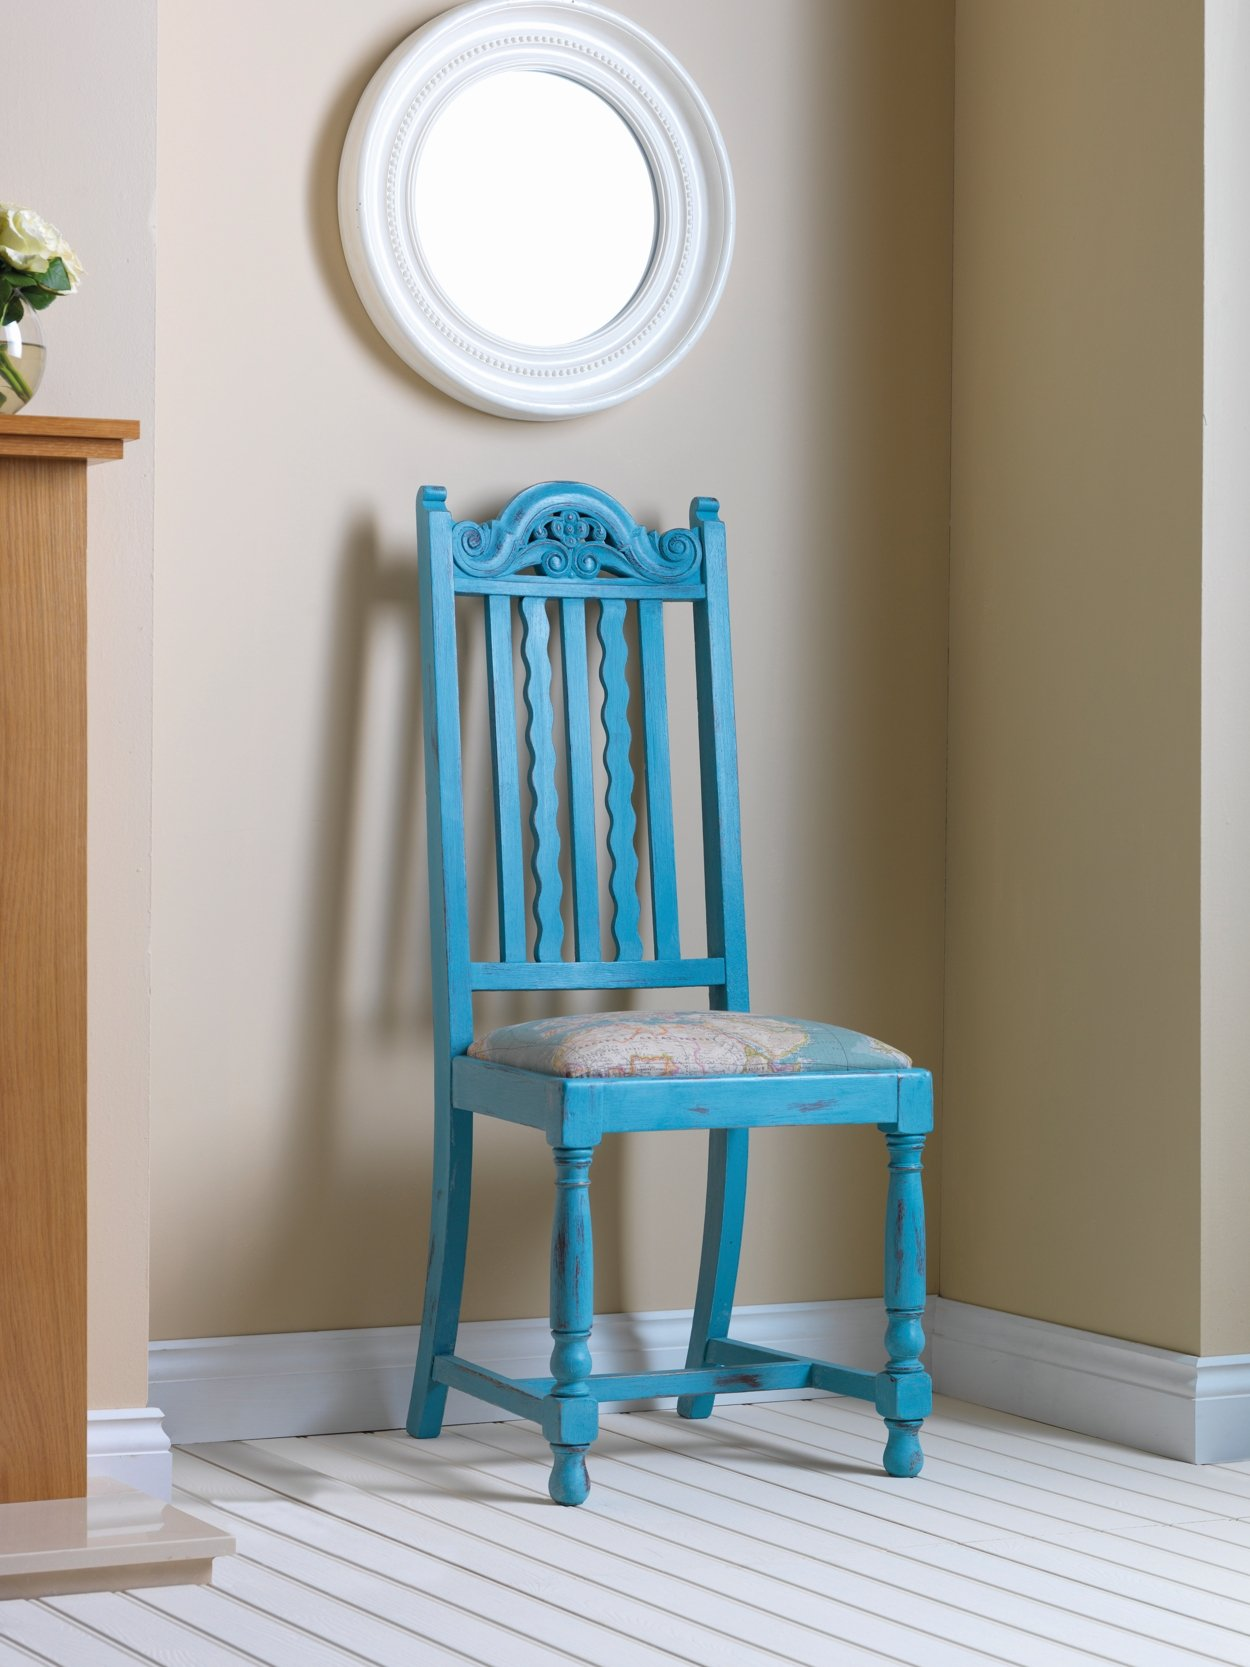 Rust Oleum Chalky Finish Furniture Paint Is One Of The Best Ways To Guarantee Fine Upcycling Results This Will Give Your Chosen Luxury